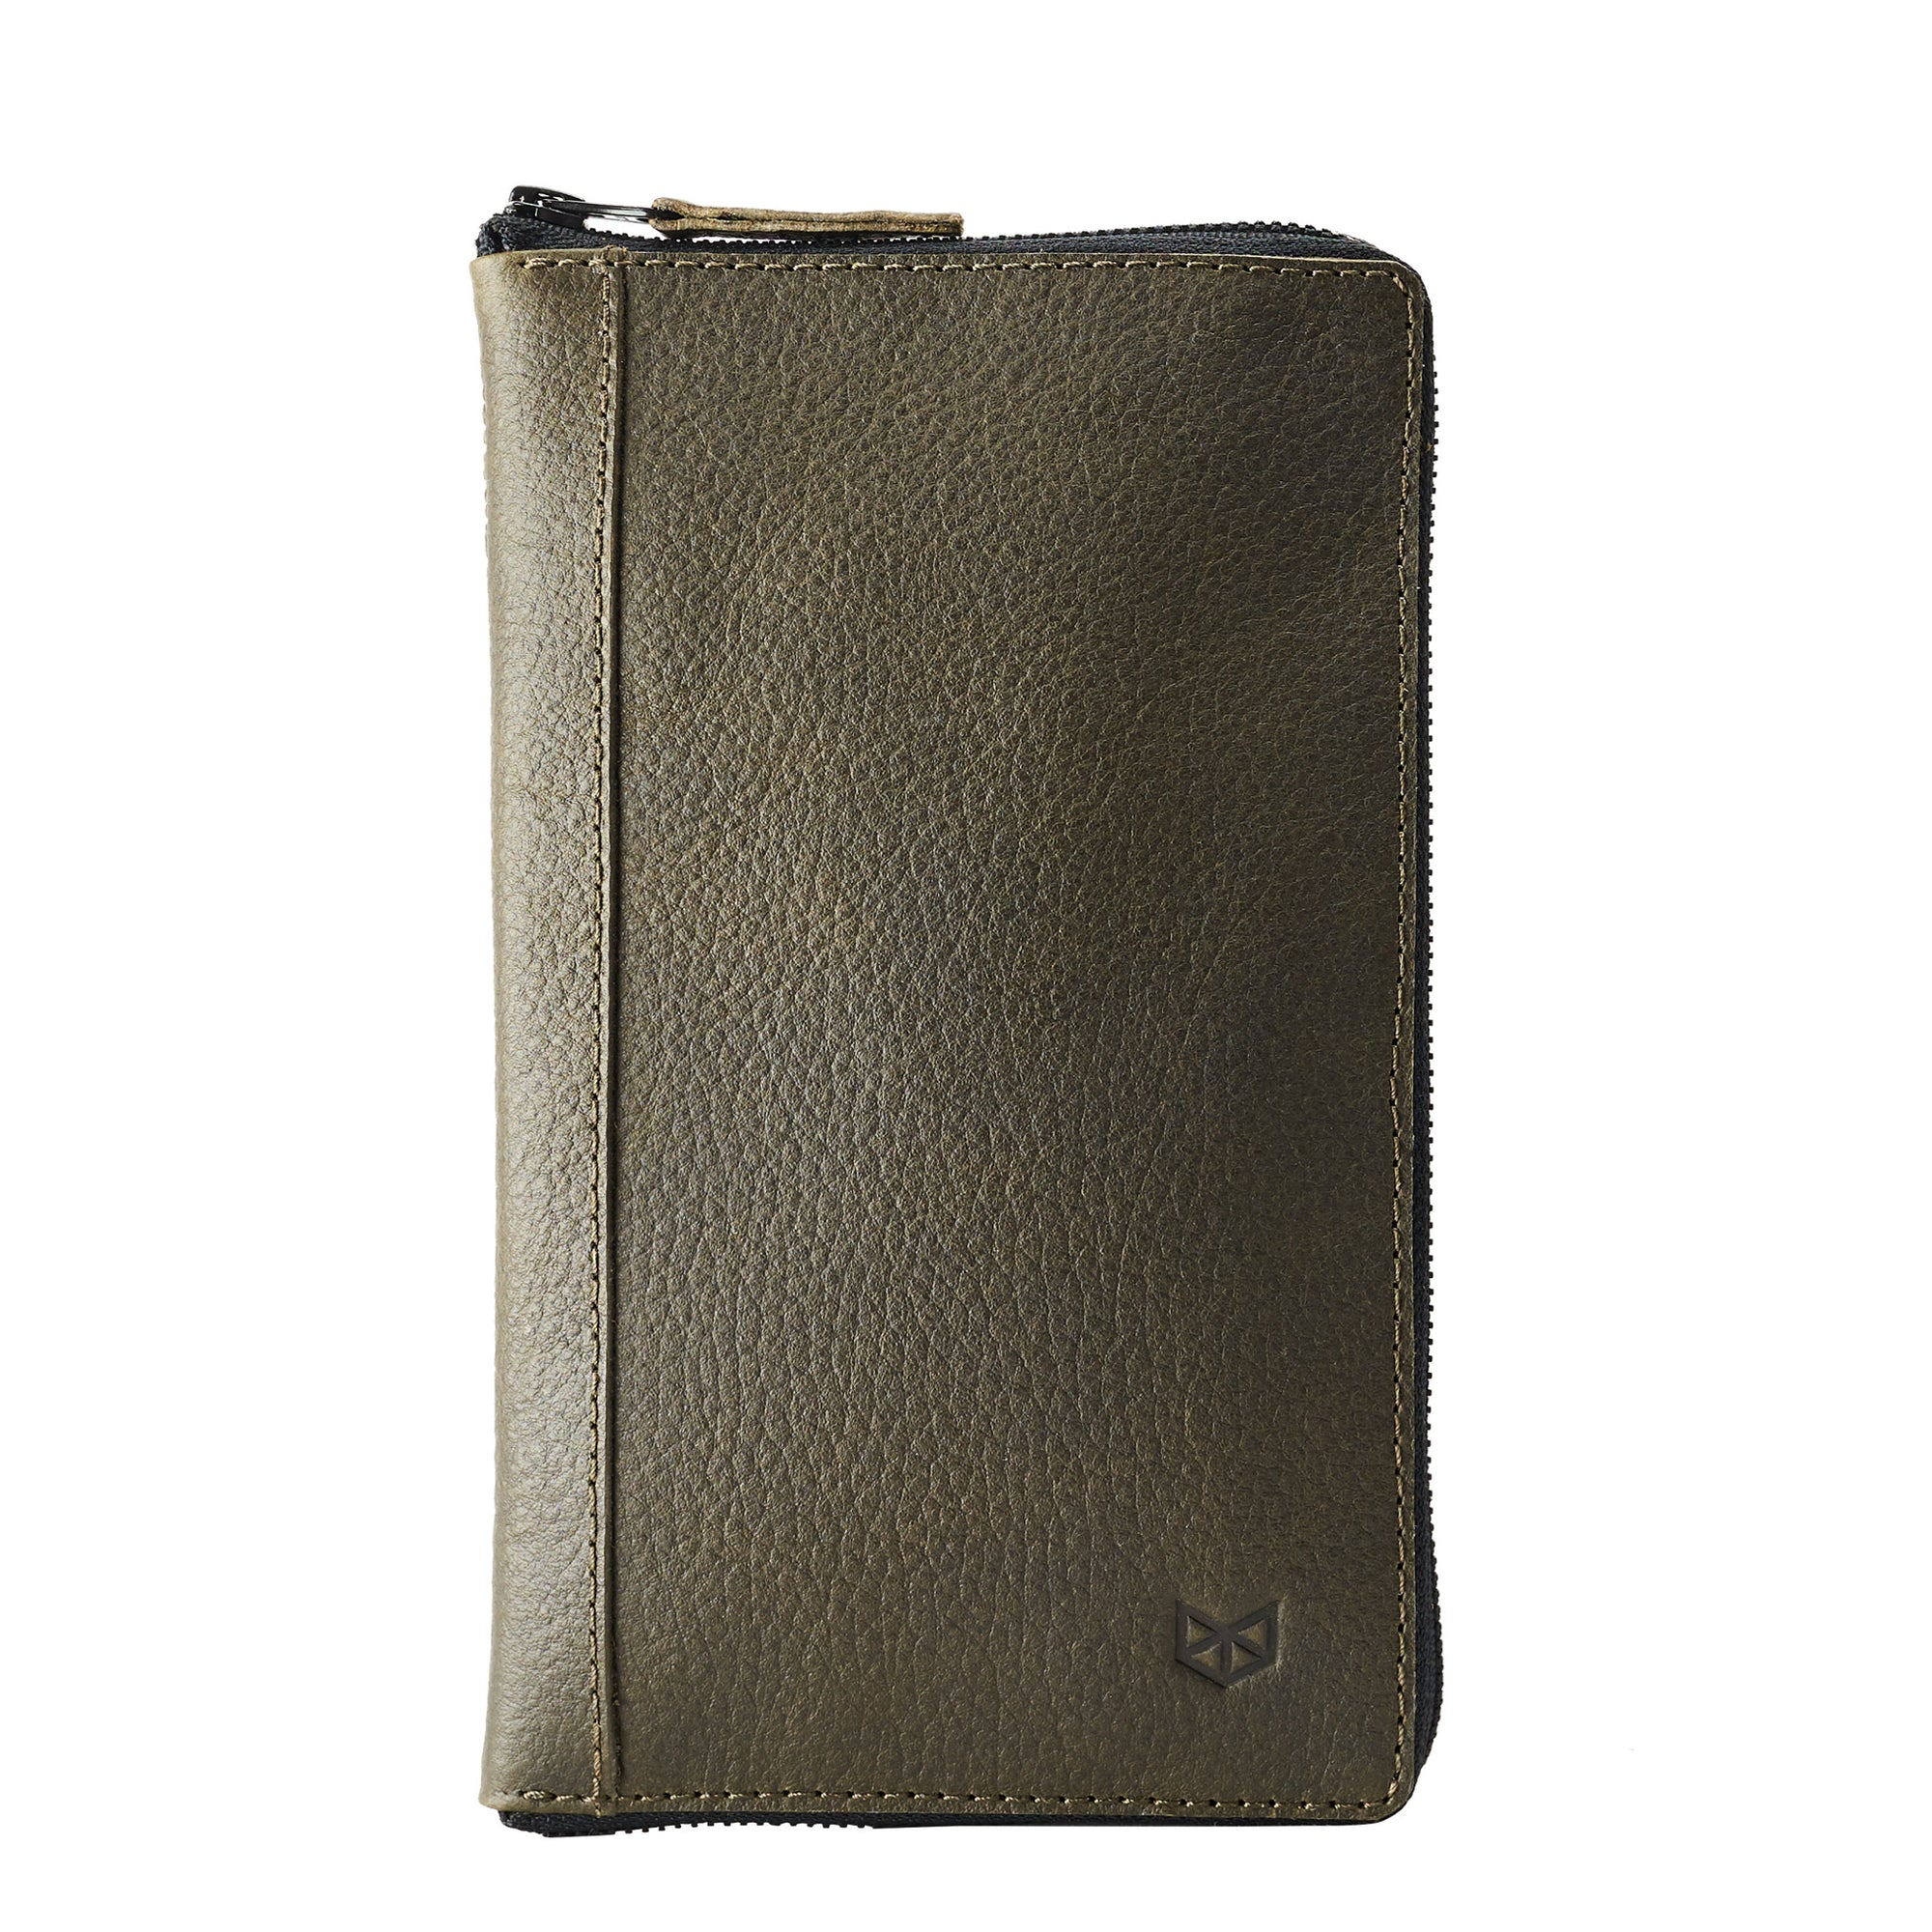 Front green leather passport wallet. Perfect for travelers. Gift for men by Capra Leather.